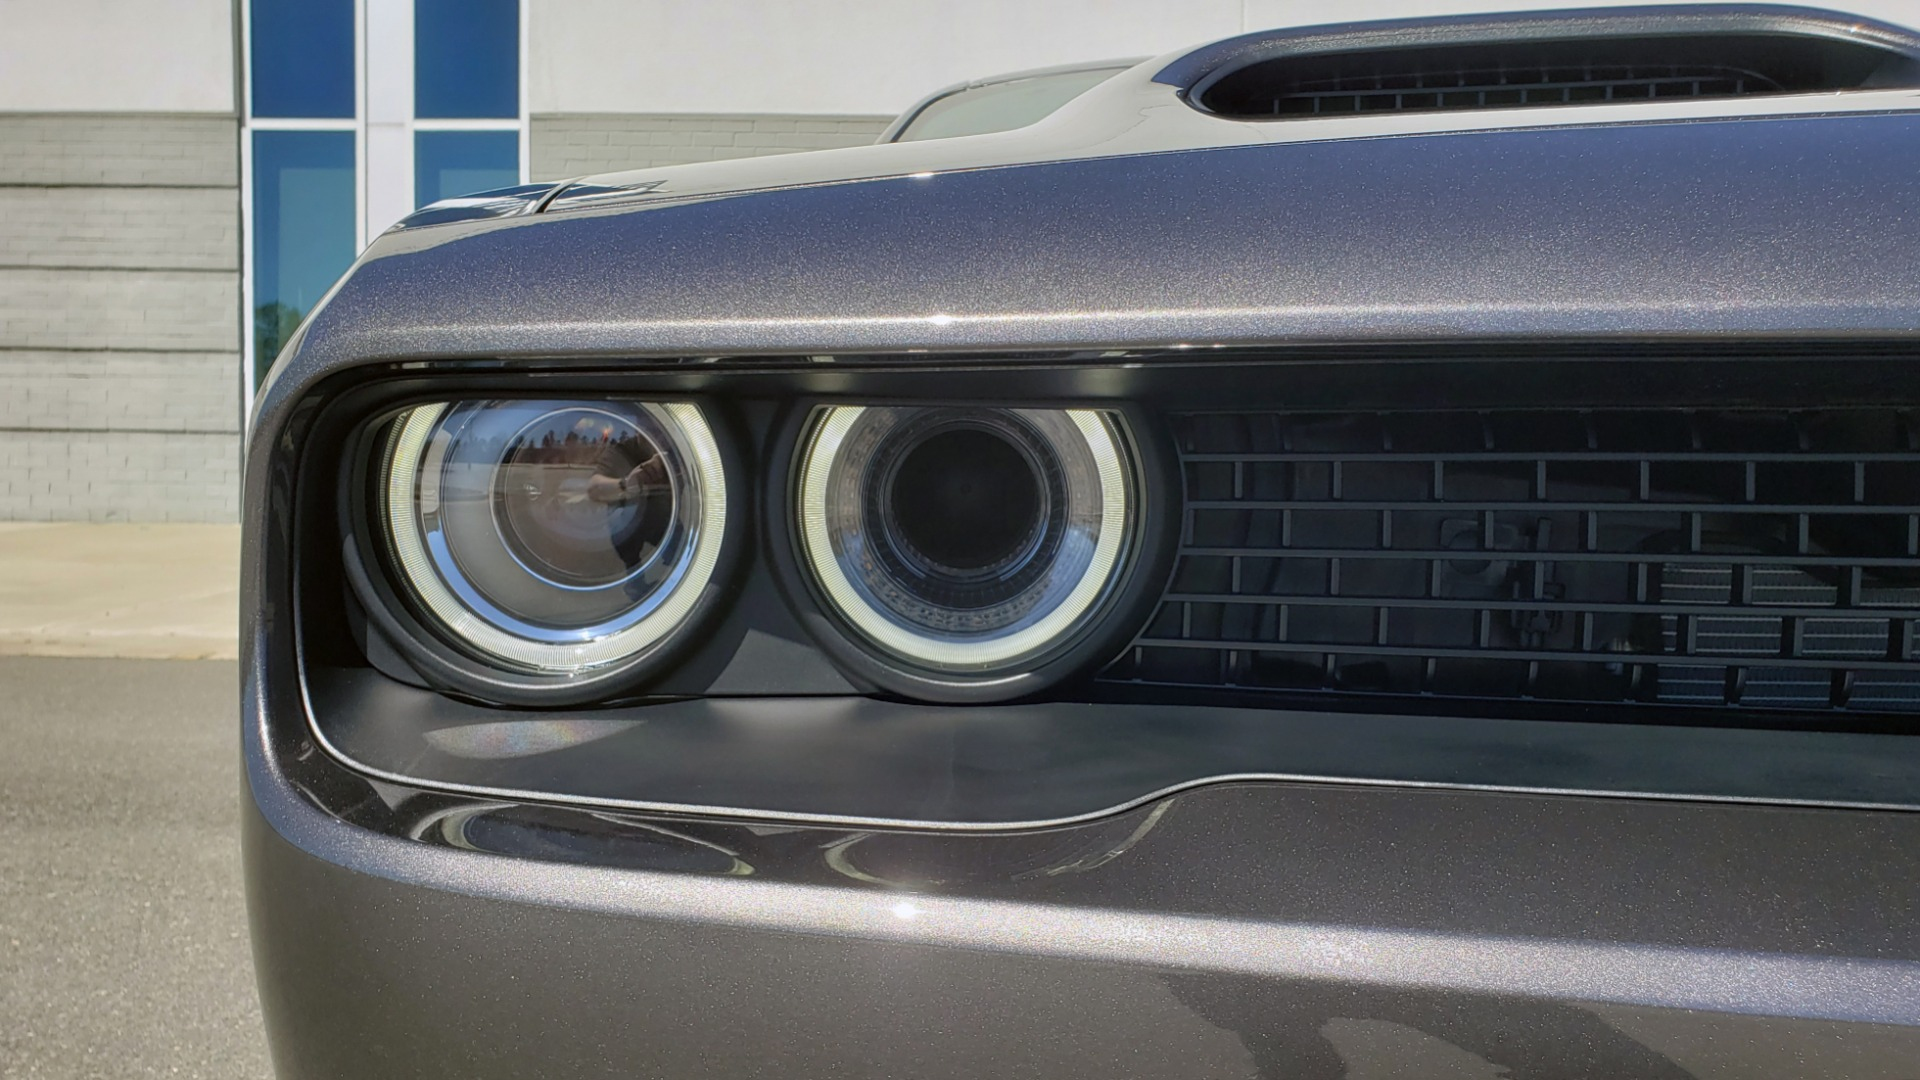 Used 2020 Dodge CHALLENGER SRT HELLCAT (717HP) / NAV / AUTO / CLOTH / REARVIEW / LOW MILES for sale $64,999 at Formula Imports in Charlotte NC 28227 24